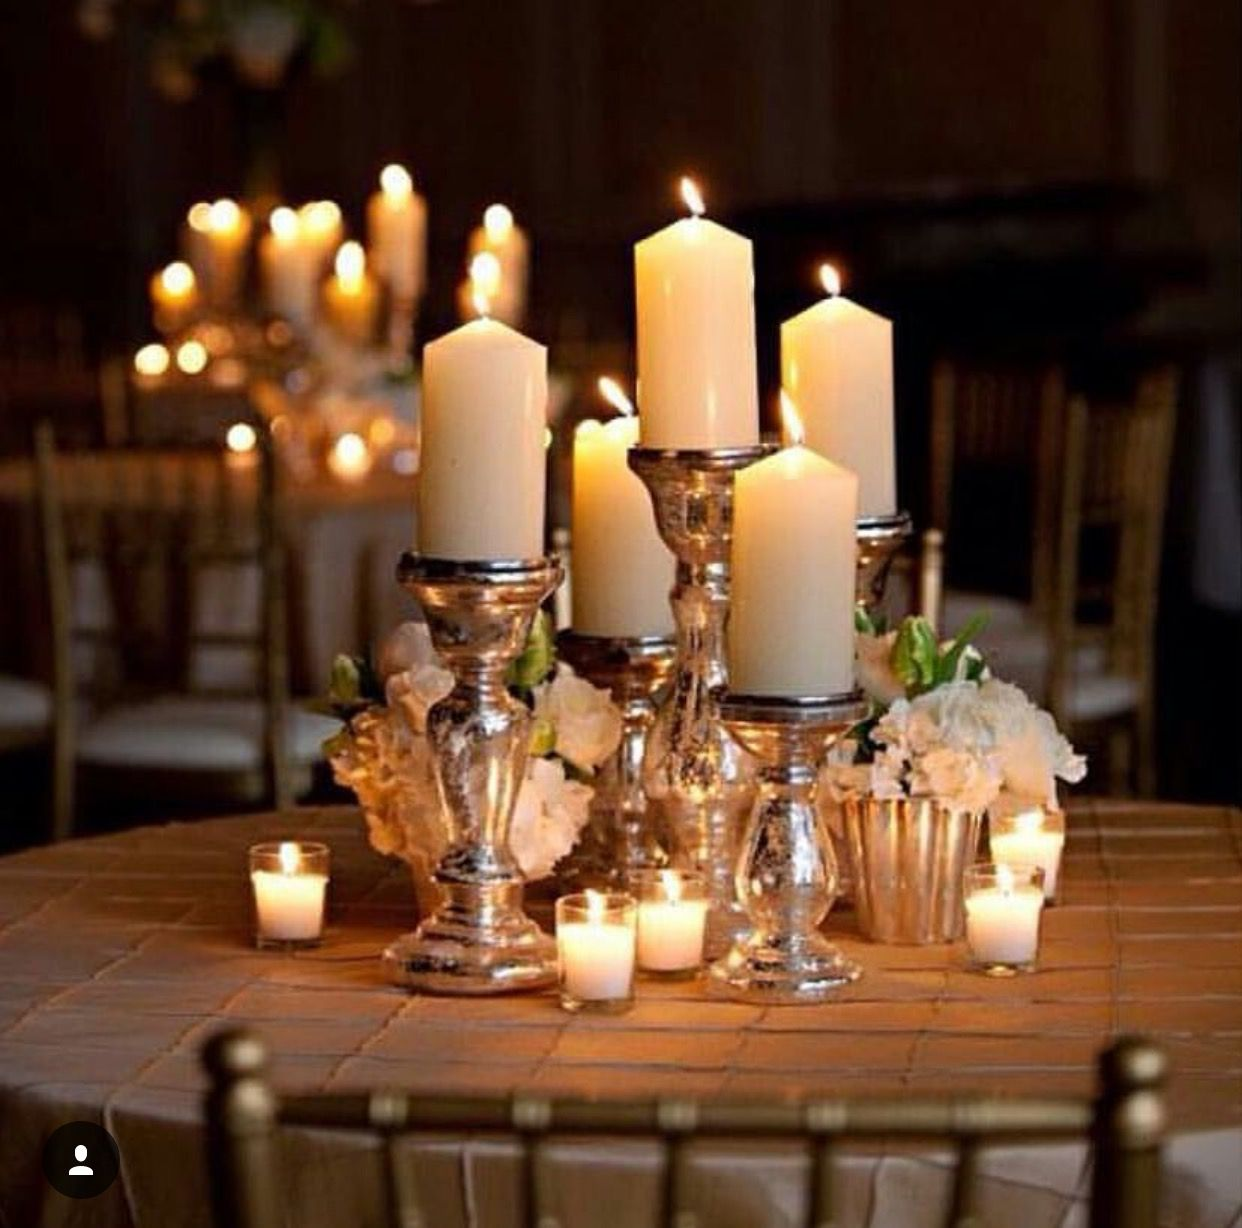 Candle Flower Centerpieces Wedding: Candles Can Make A Beautiful Wedding Centerpiece